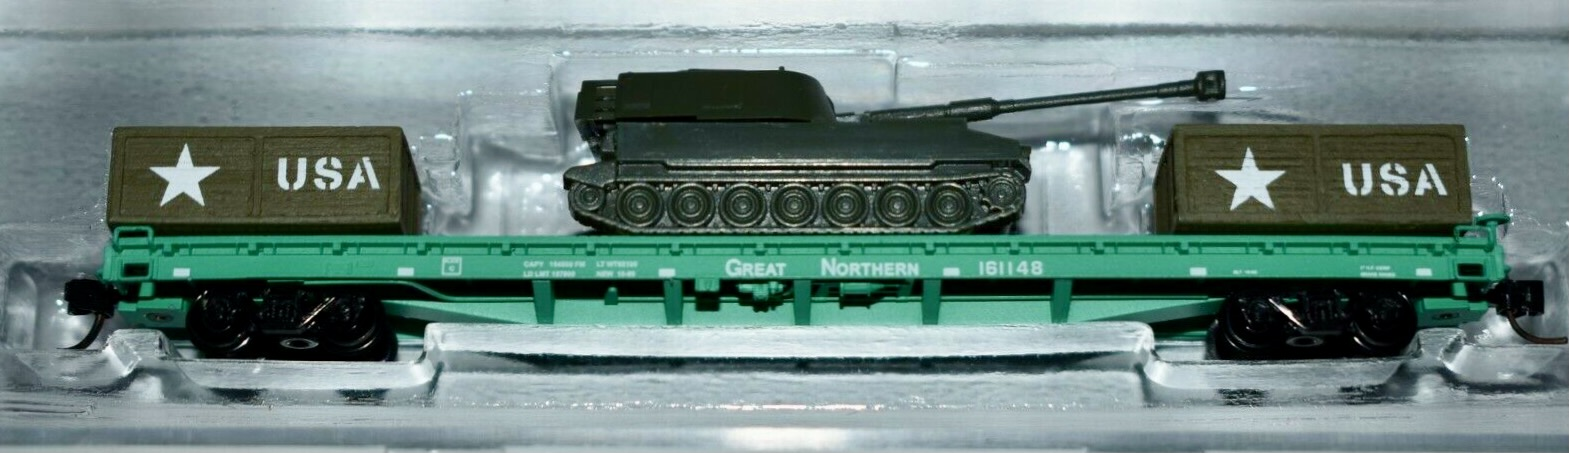 N Scale - InterMountain - NSE INT 12-73 - Flatcar, 60 Foot - Great Northern - 161148